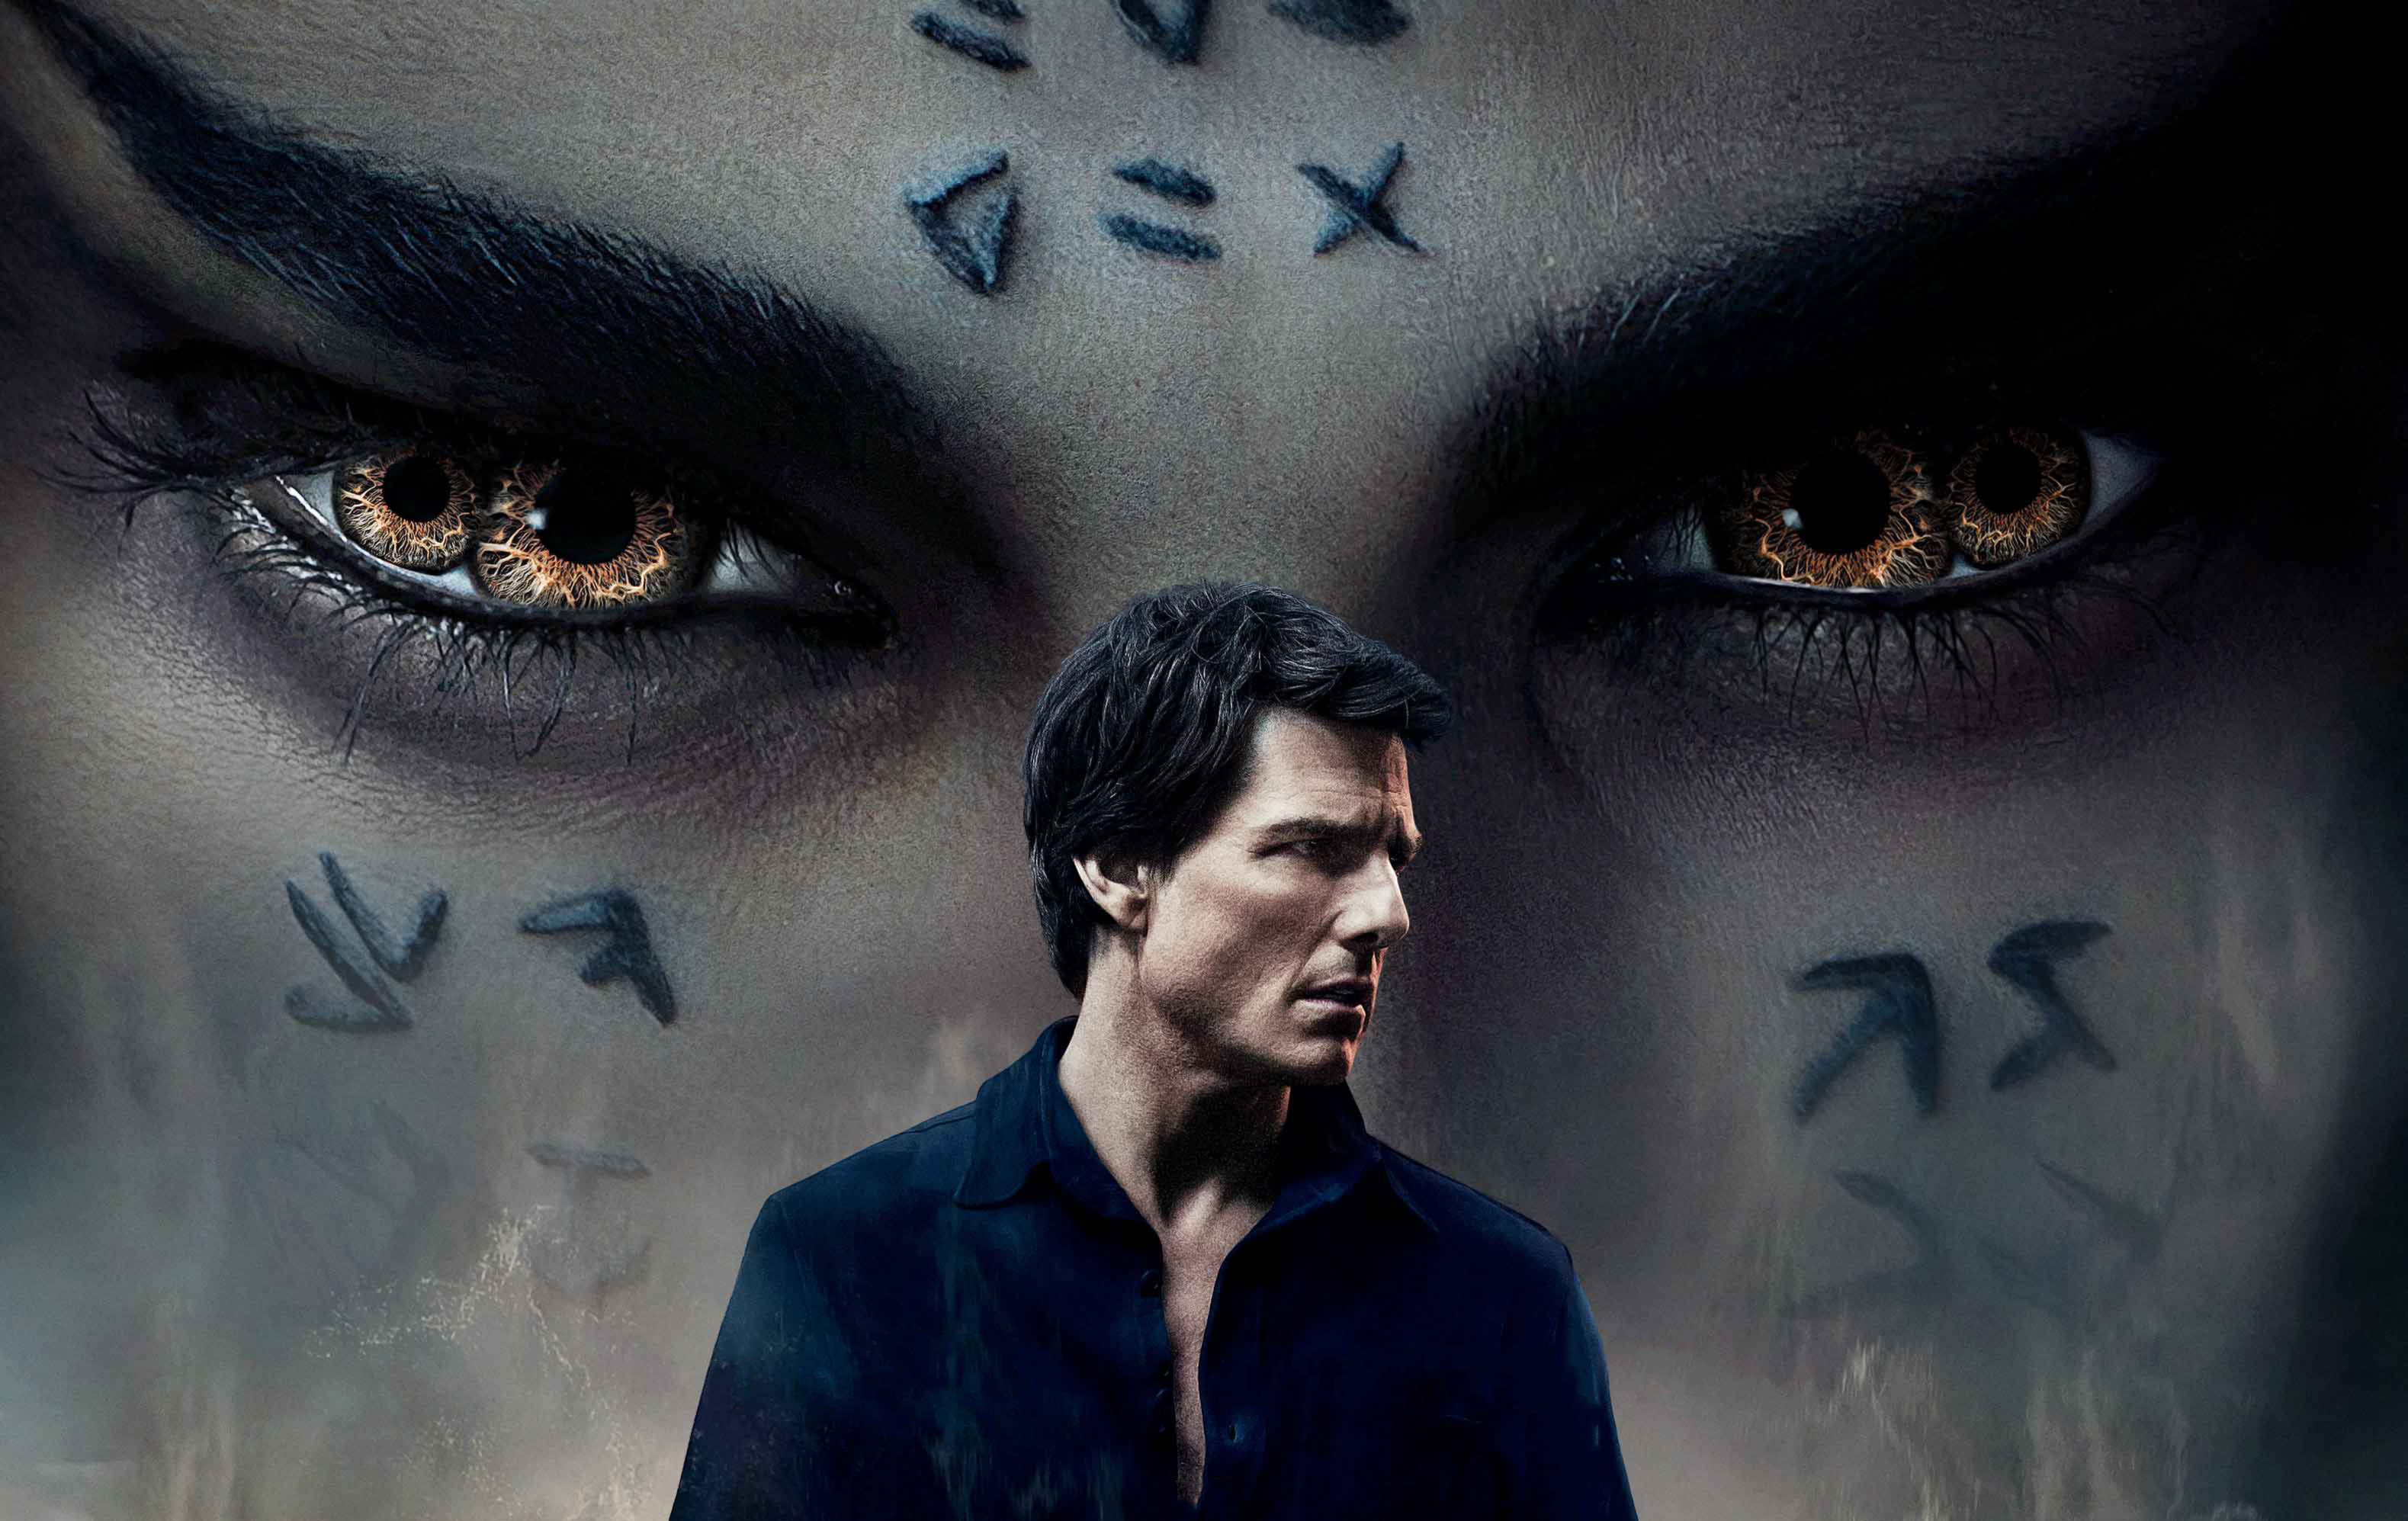 The Mummy 2017 Tom Cruise 4k Hd Movies 4k Wallpapers Images